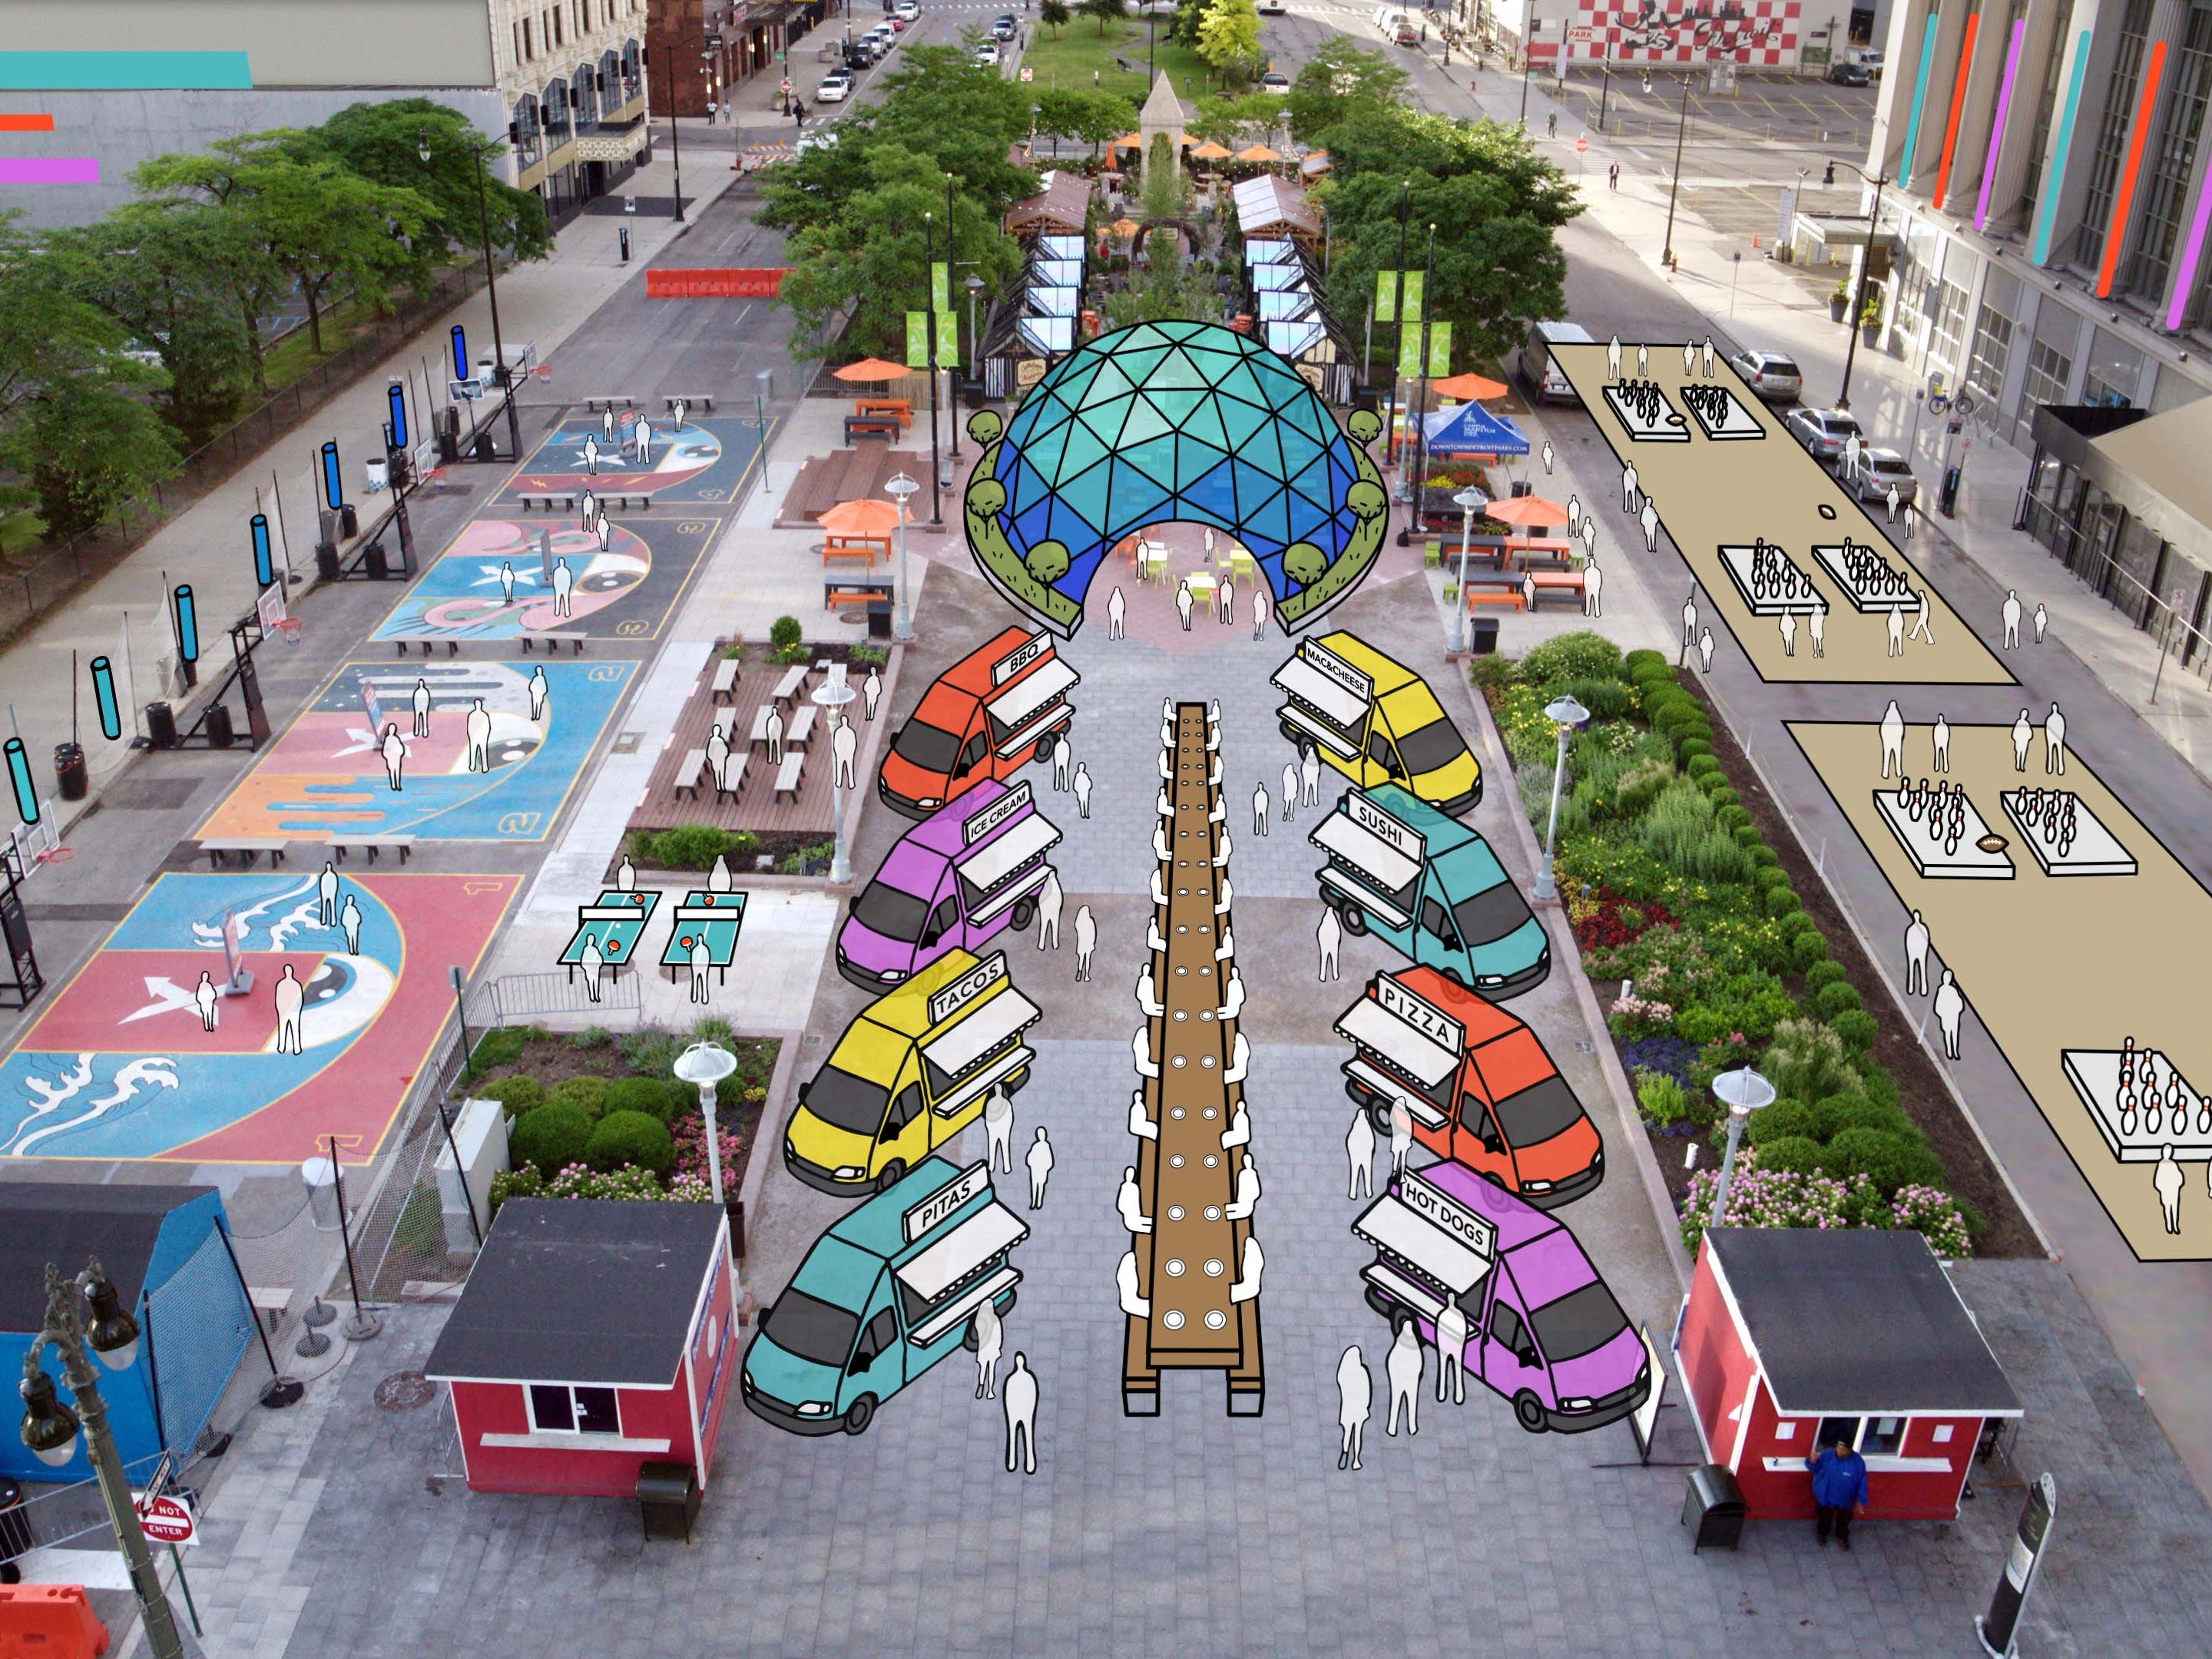 January's Detroit auto show looms, but eyes are on June 2020